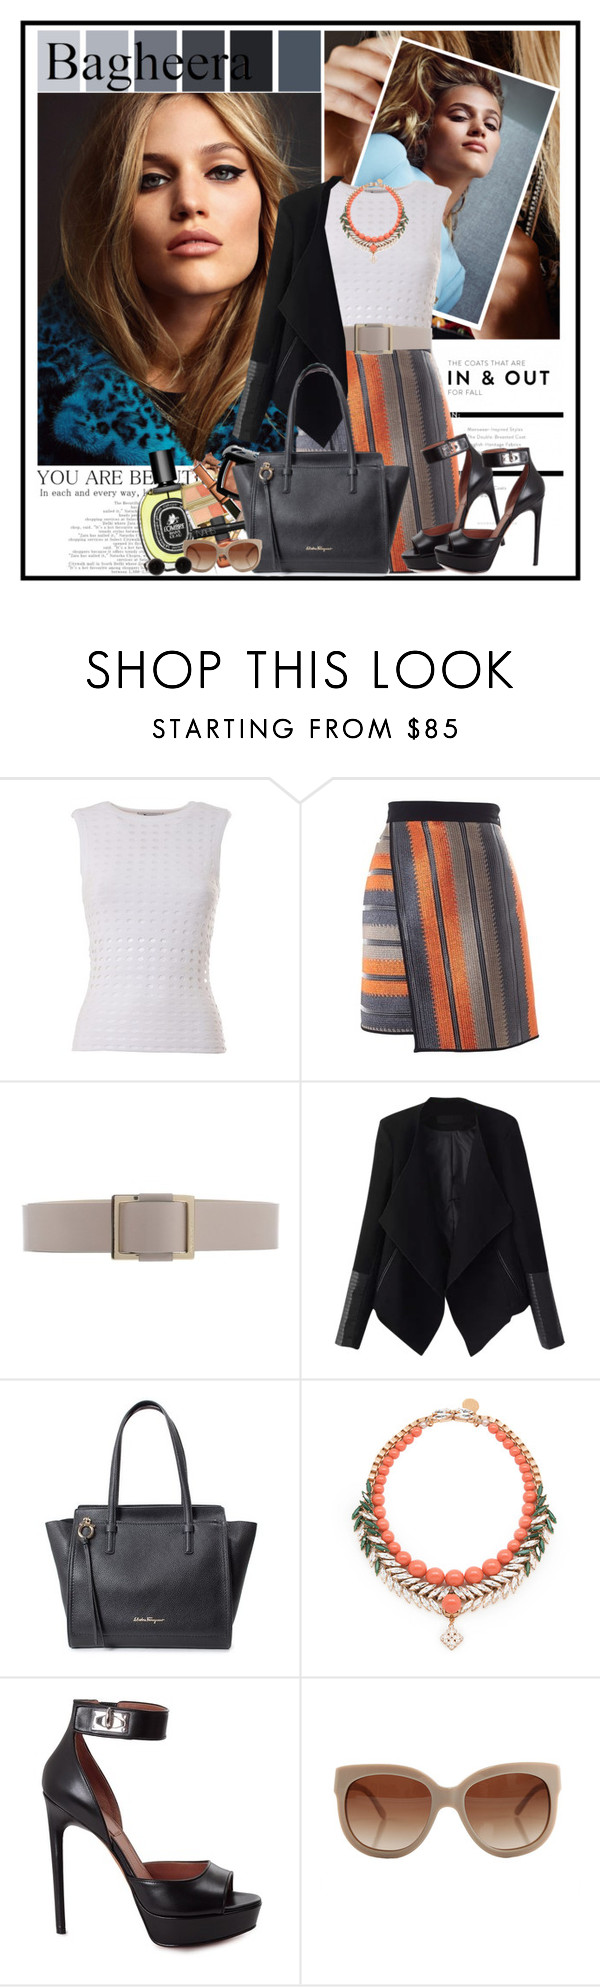 """""""...."""" by cindy88 ❤ liked on Polyvore featuring T By Alexander Wang, MSGM, BOSS Black, Relaxfeel, Salvatore Ferragamo, Ellen Conde, Givenchy, STELLA McCARTNEY and bagheeraboutique"""